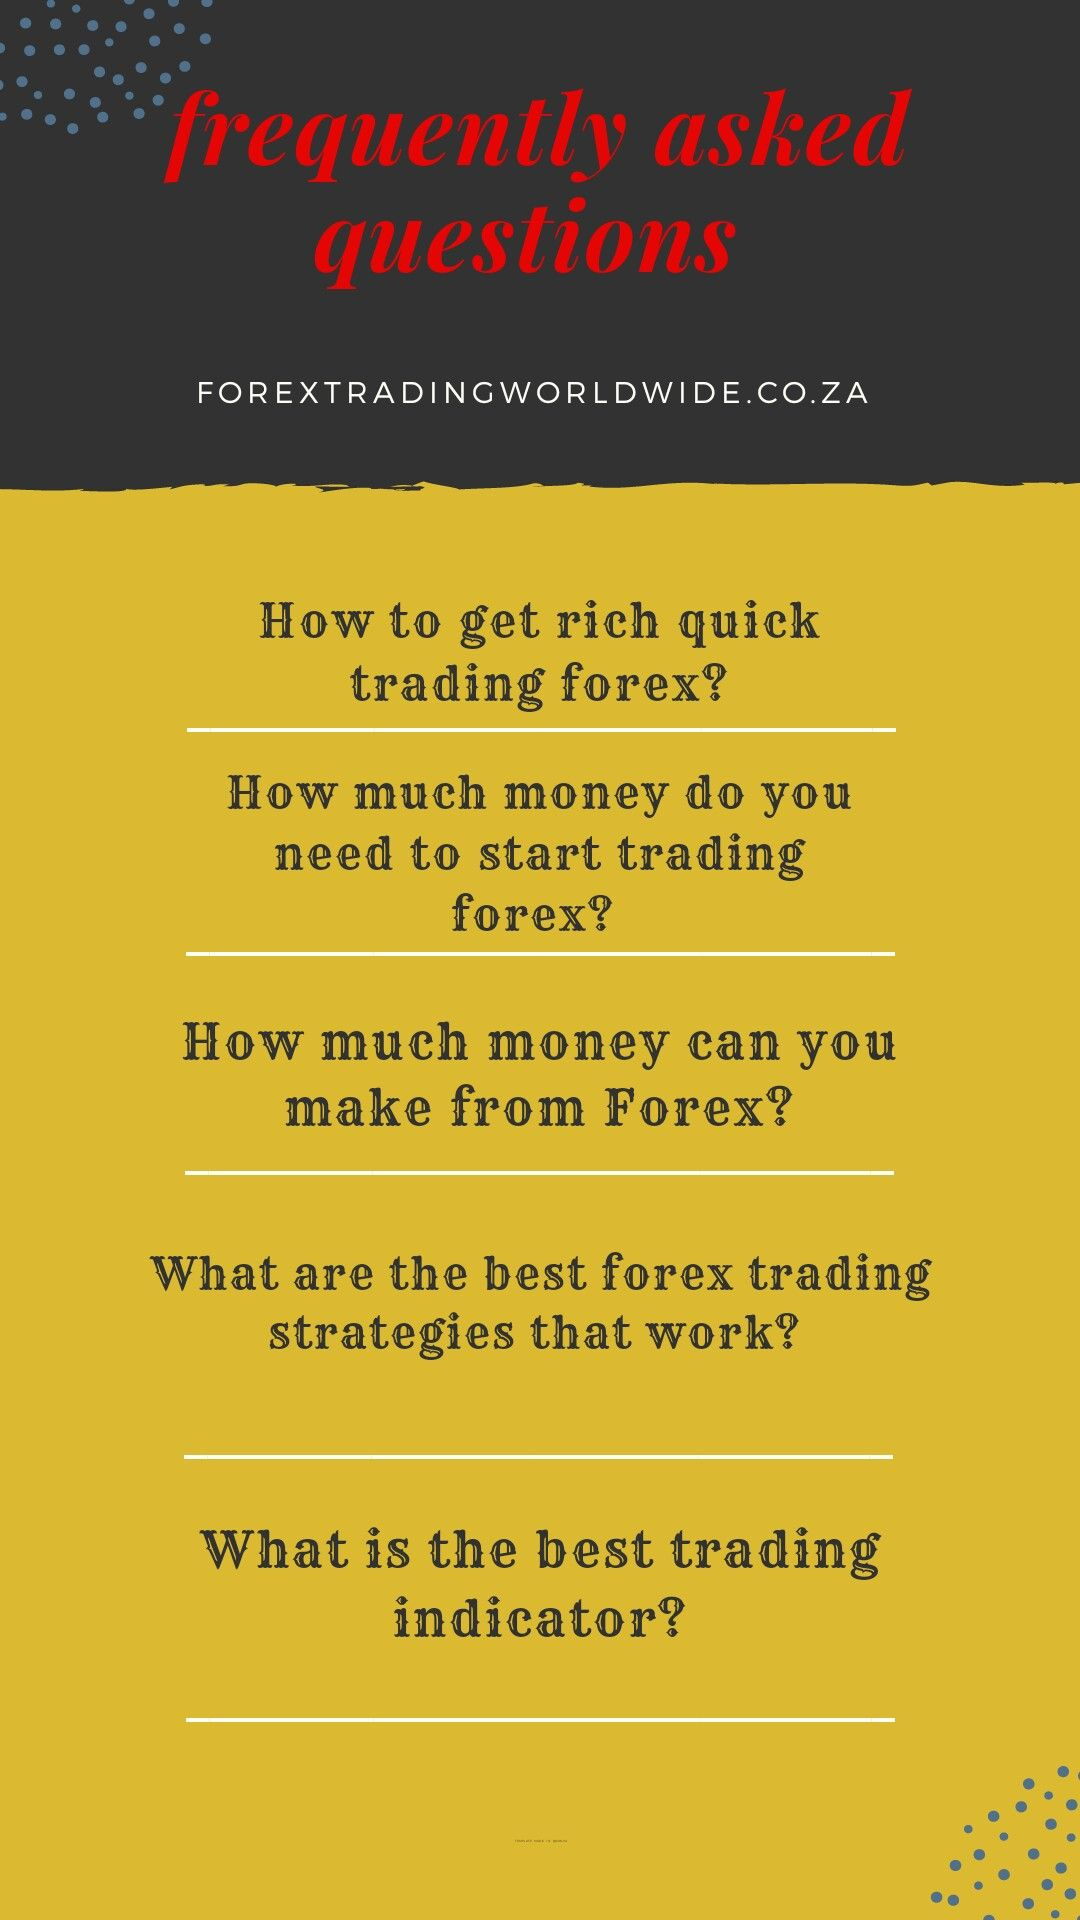 Can You Get Rich Quick Trading Forex? - The Lazy Trader